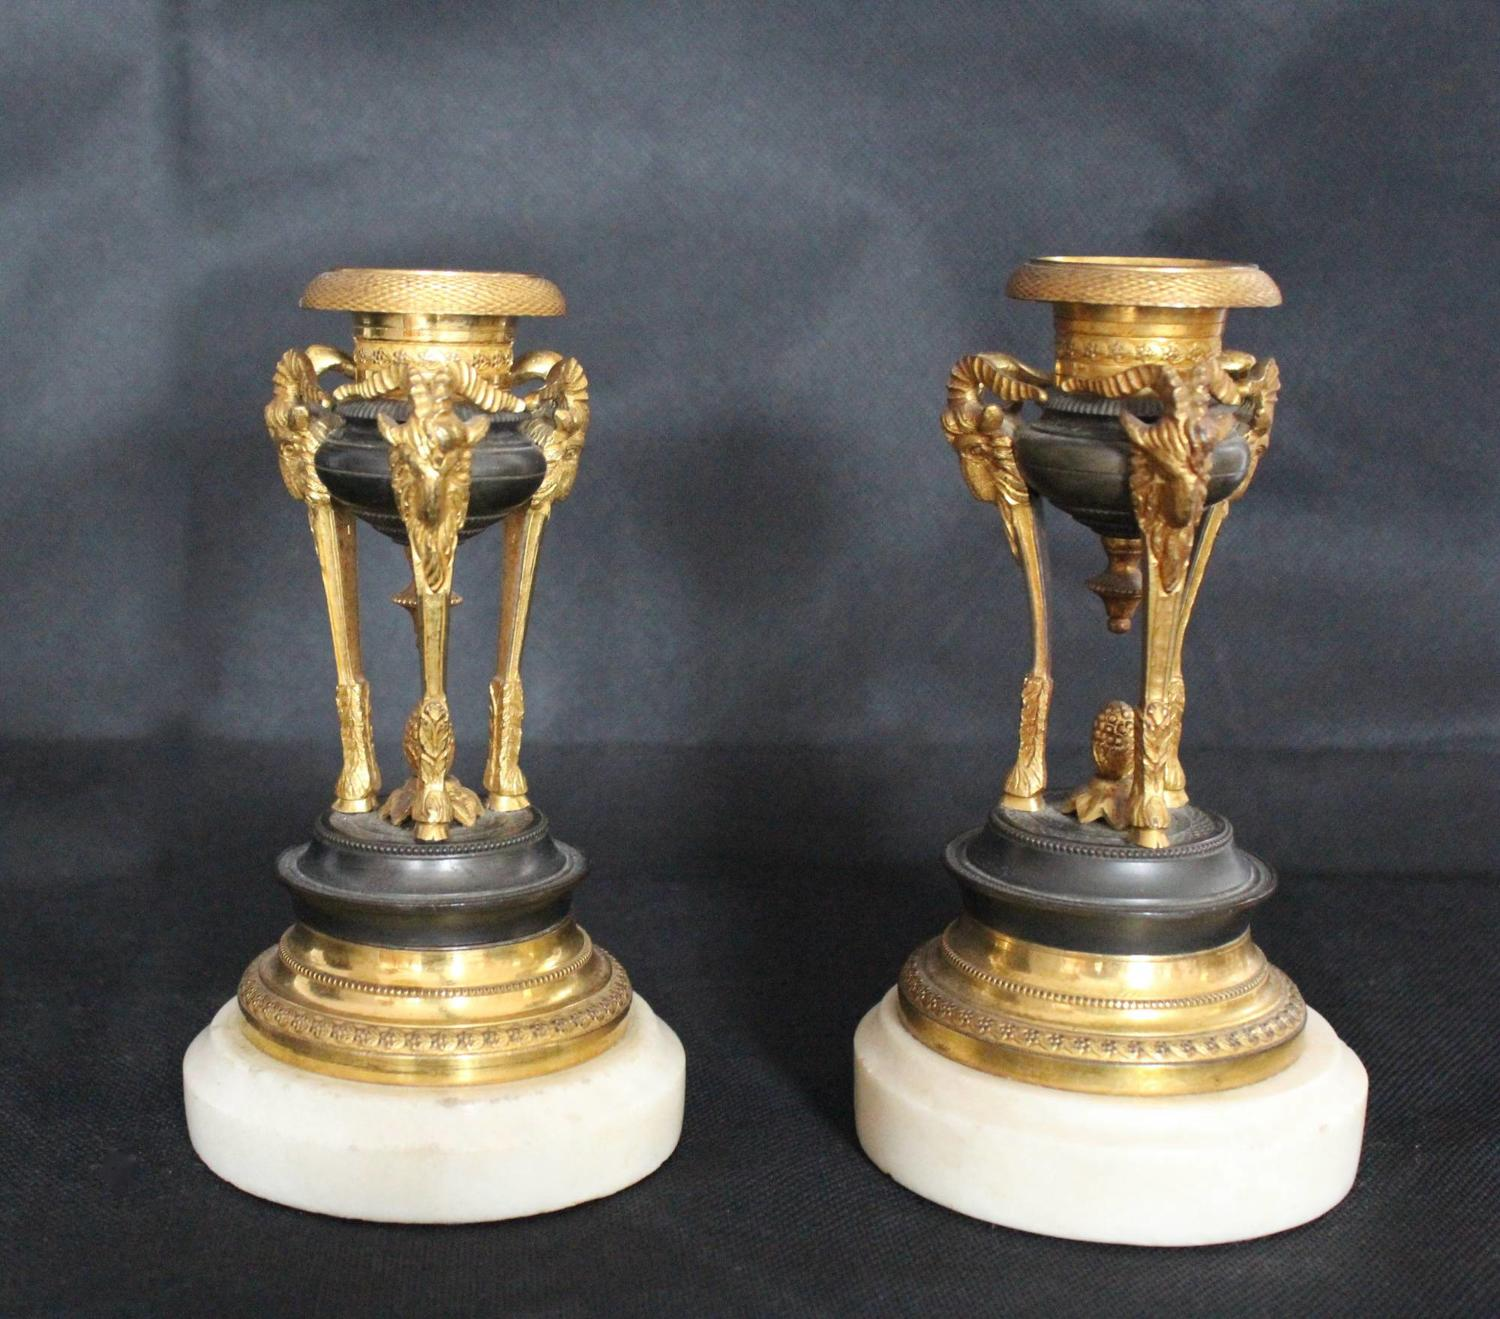 French Gilt Bronze Candlesticks in Empire Style